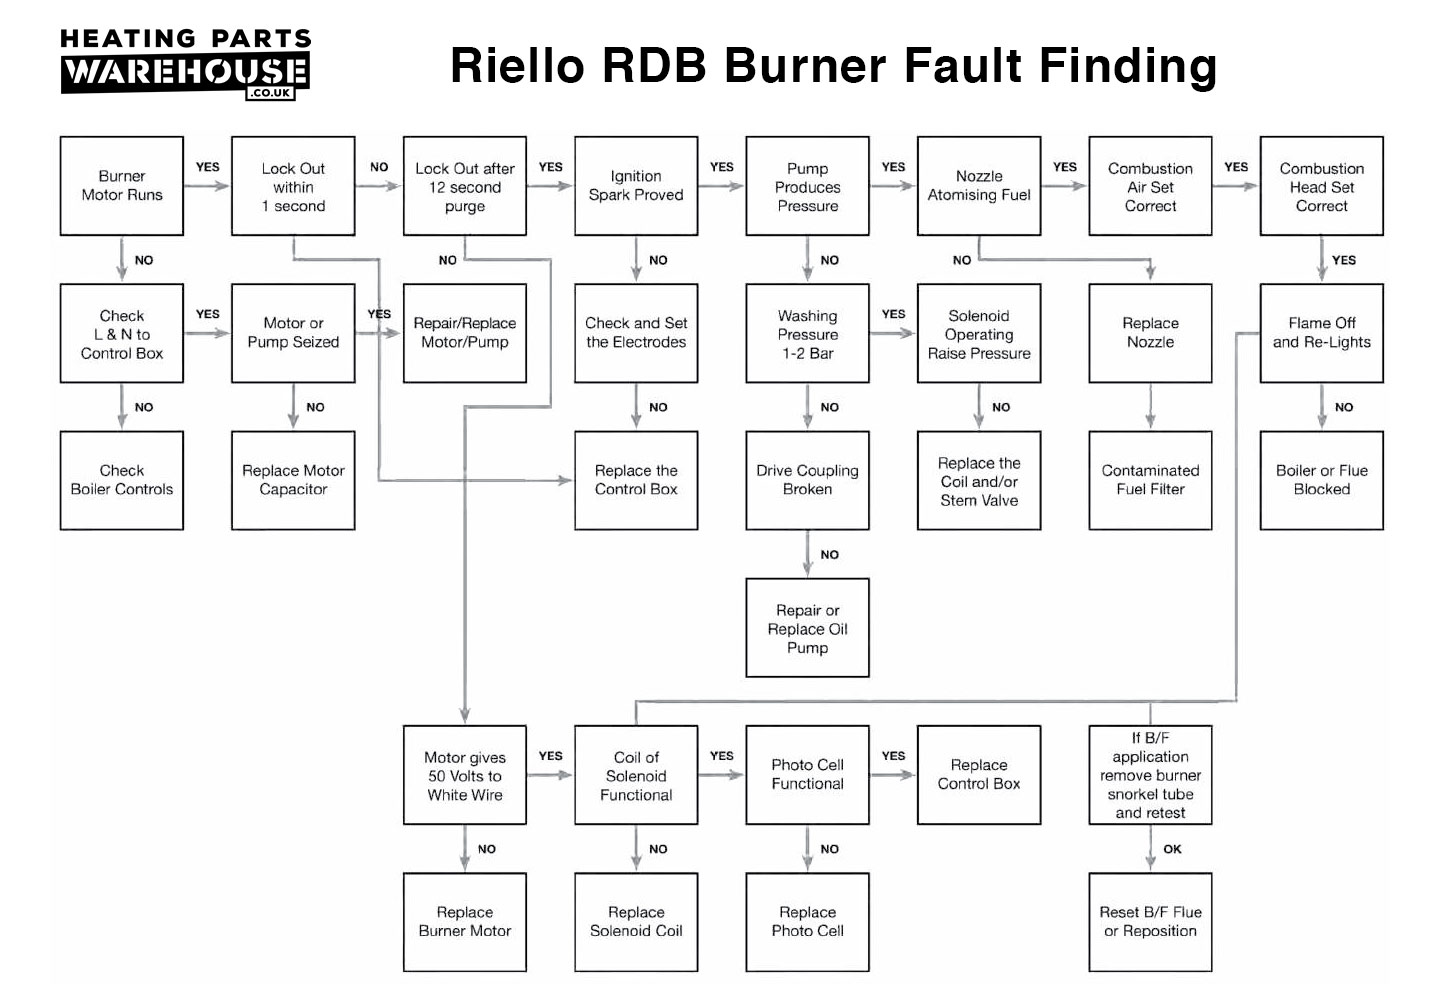 Riello RDB 2.2 Burner Fault Finding diagram